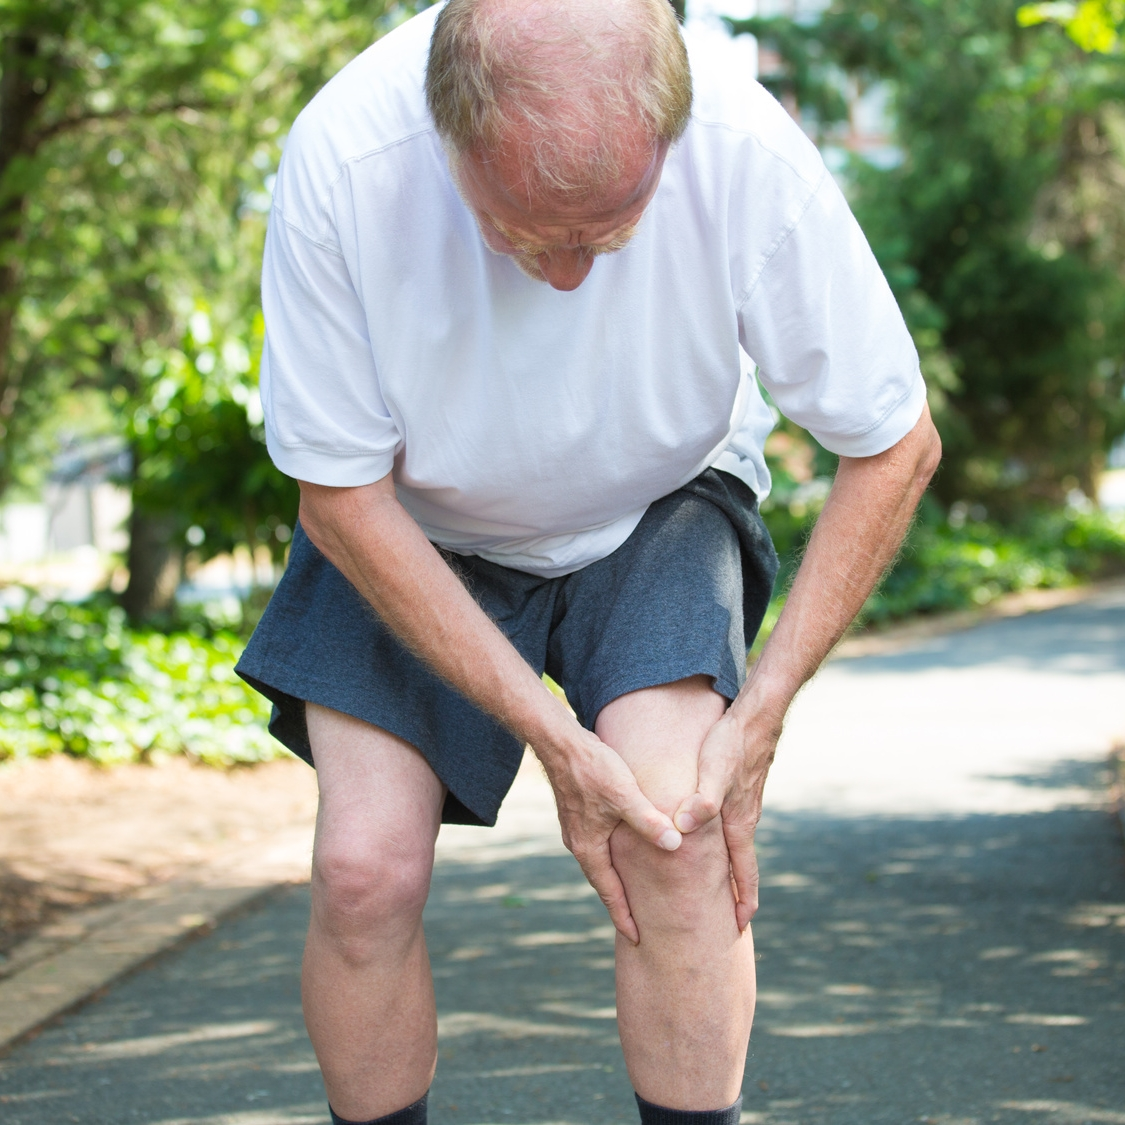 Current Surgical Treatment of Knee Osteoarthritis